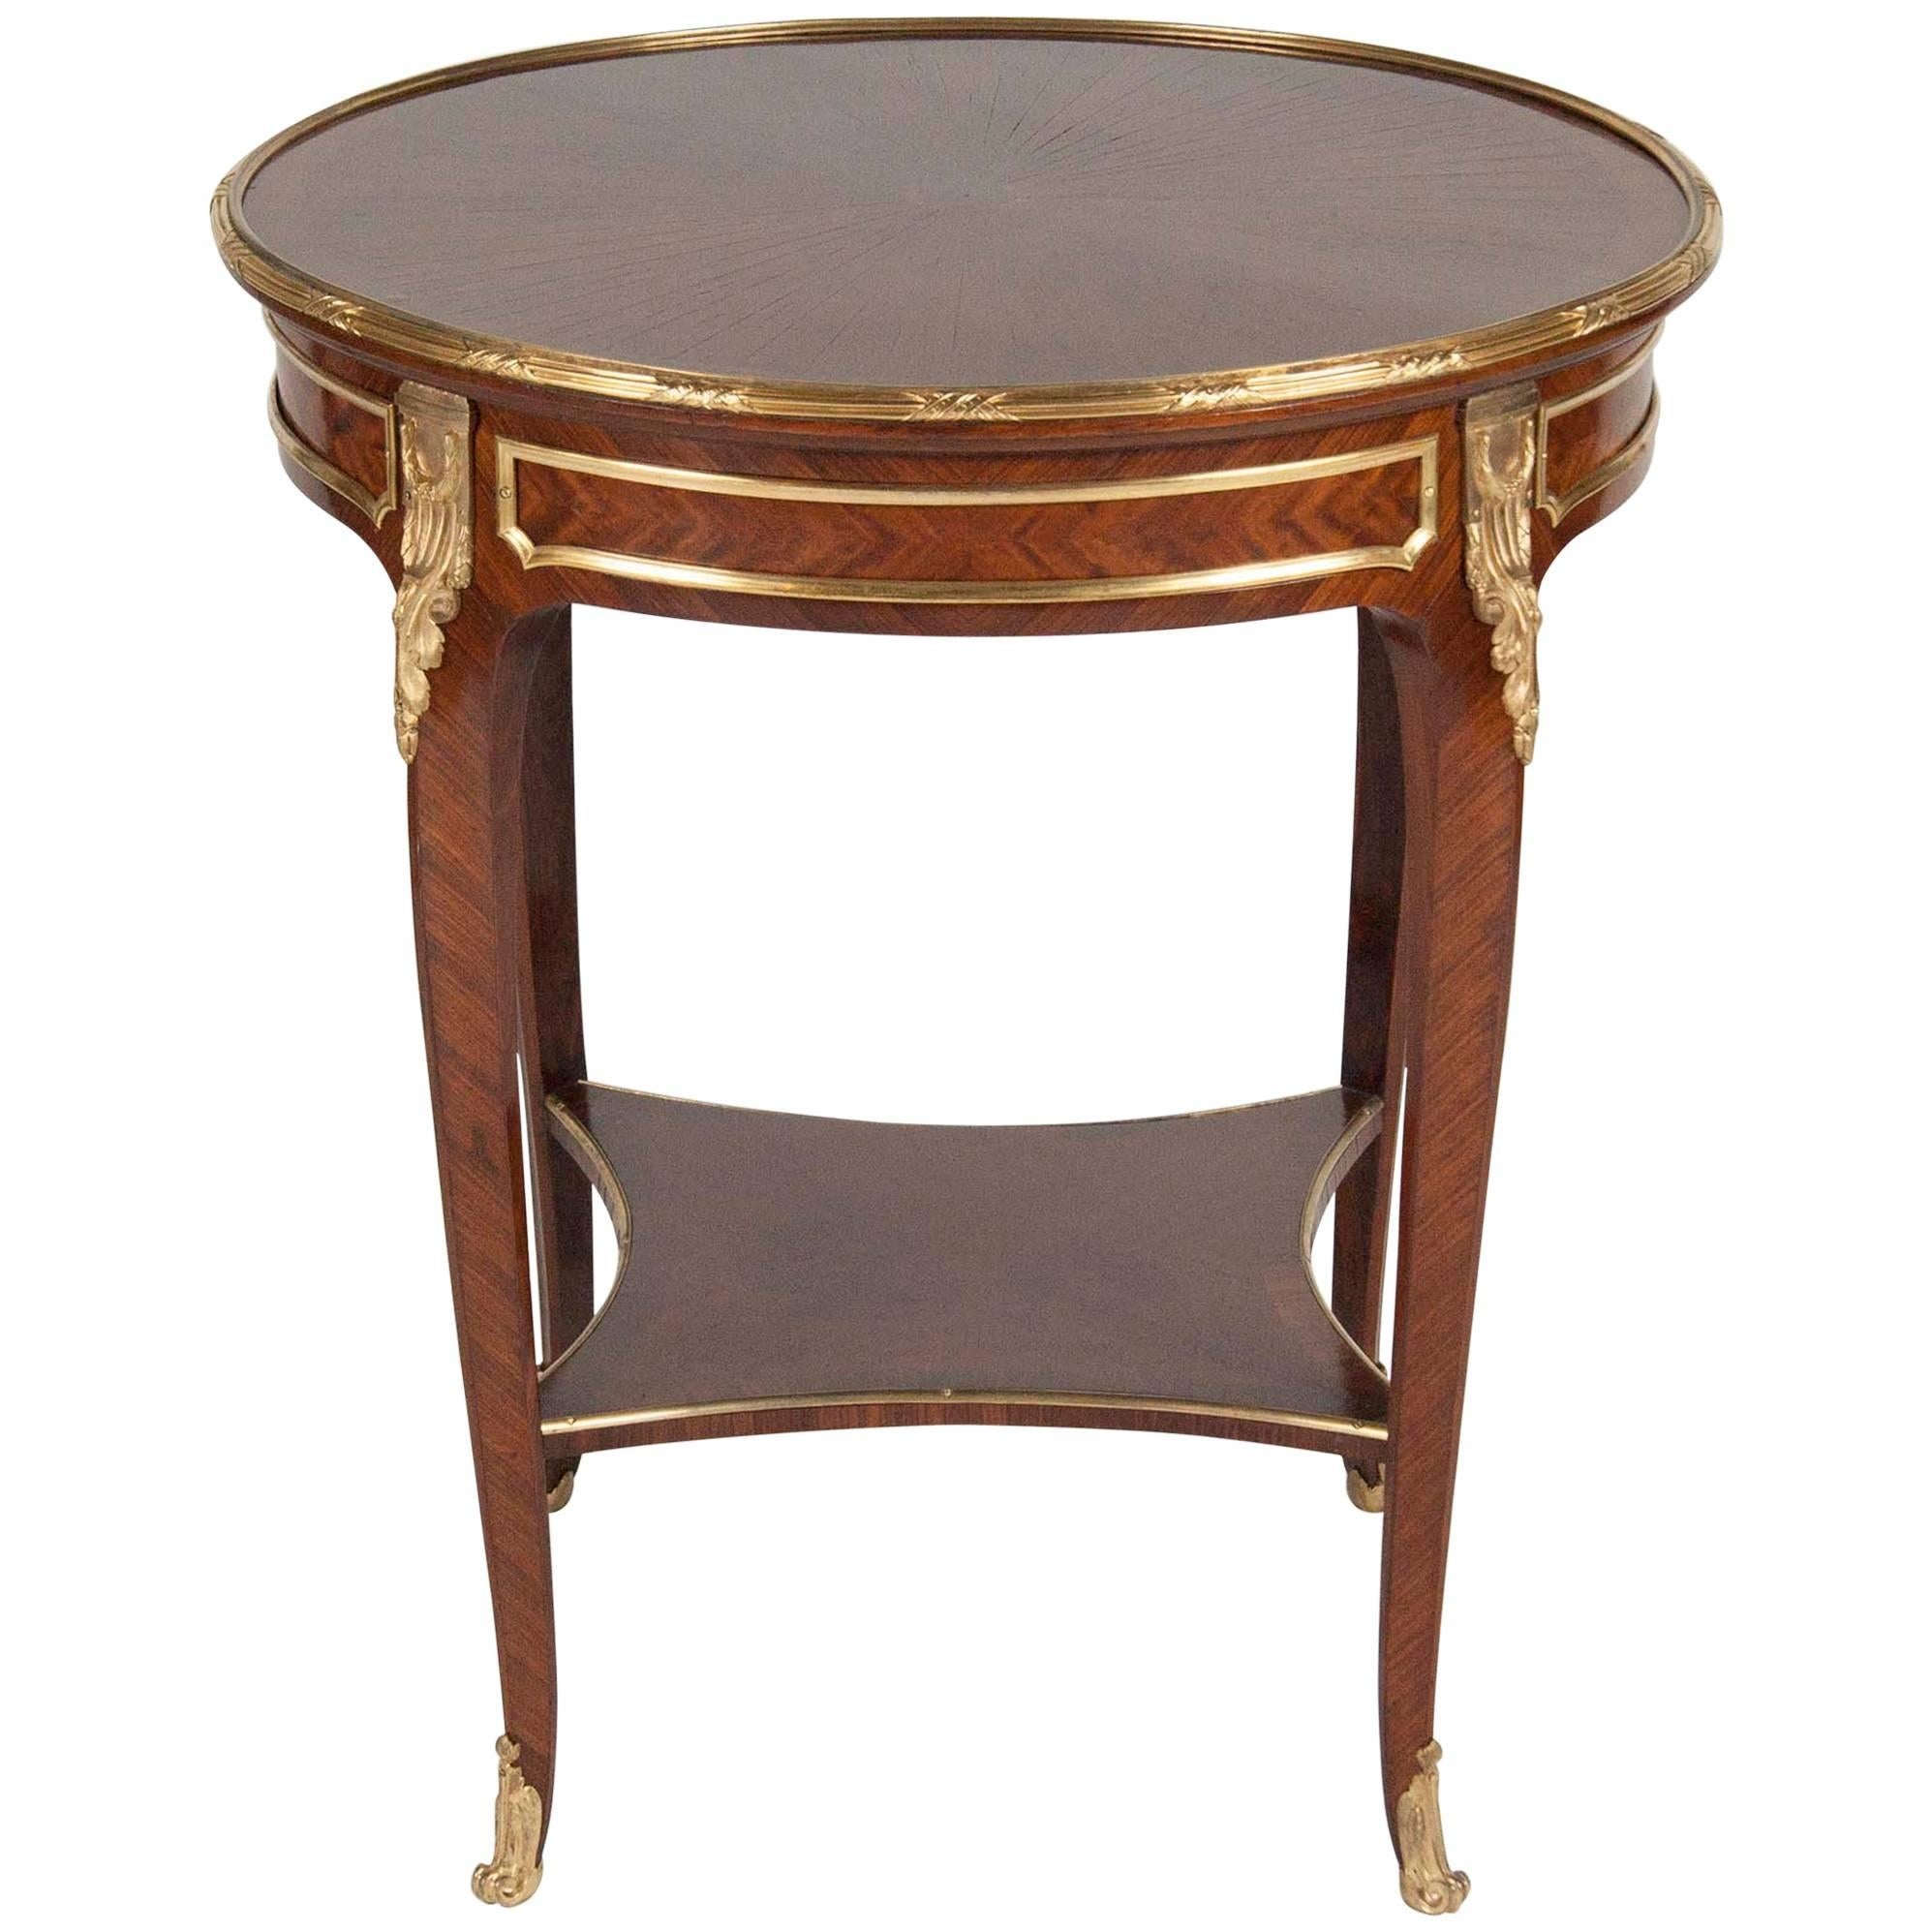 French Bronze Mounted Gueridon Table